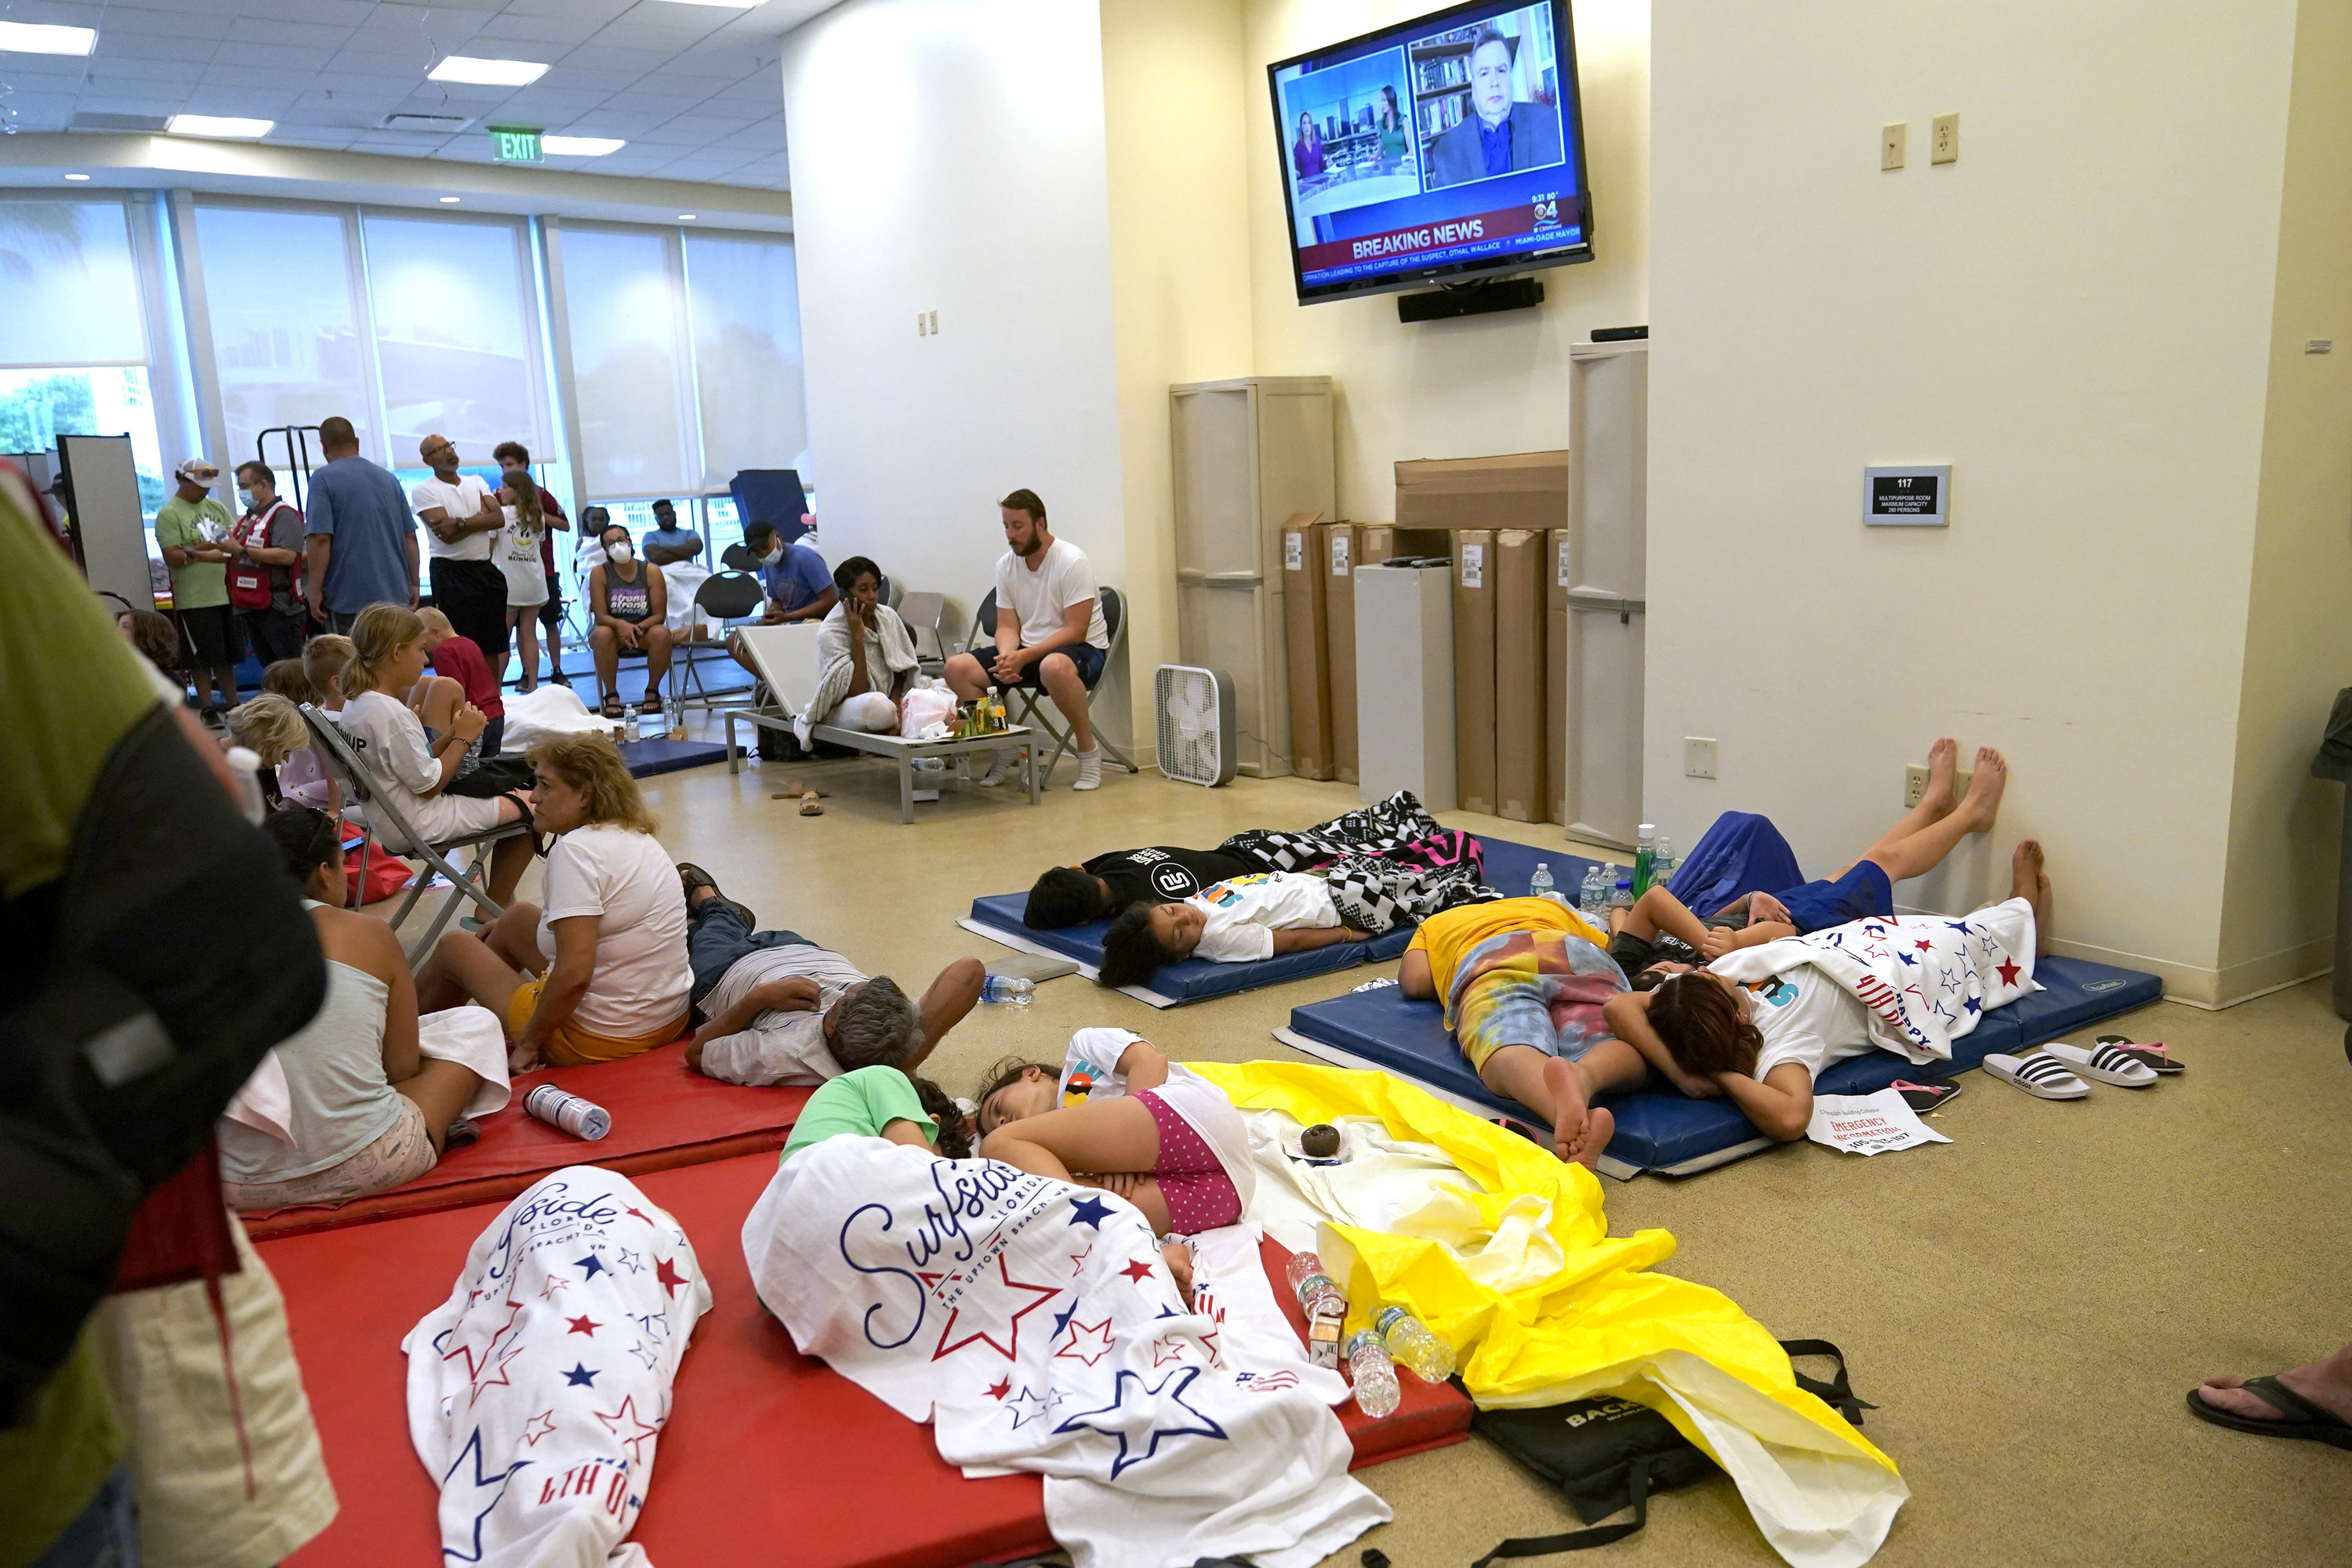 People lie on gym mats under towels in a beige room with a television on the wall playing breaking news